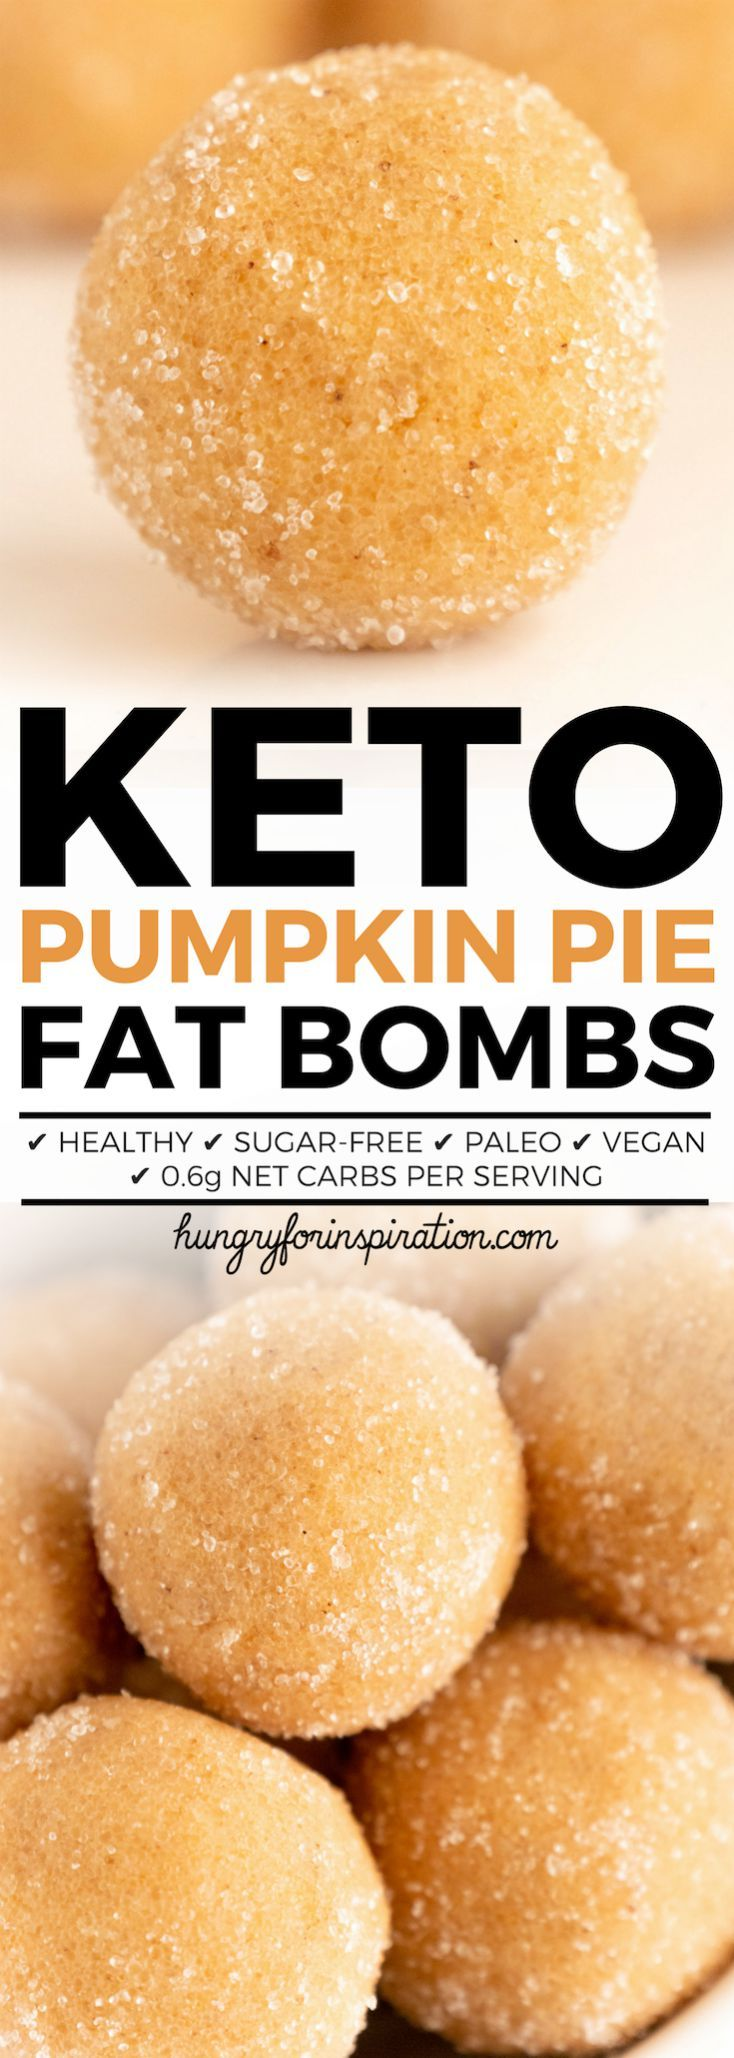 Healthy No Bake Pumpkin Pie Keto Fat Bombs (Keto Dessert, Low Carb Desserts, Keto Snacks) - Paleo & Vegan #ketodessert